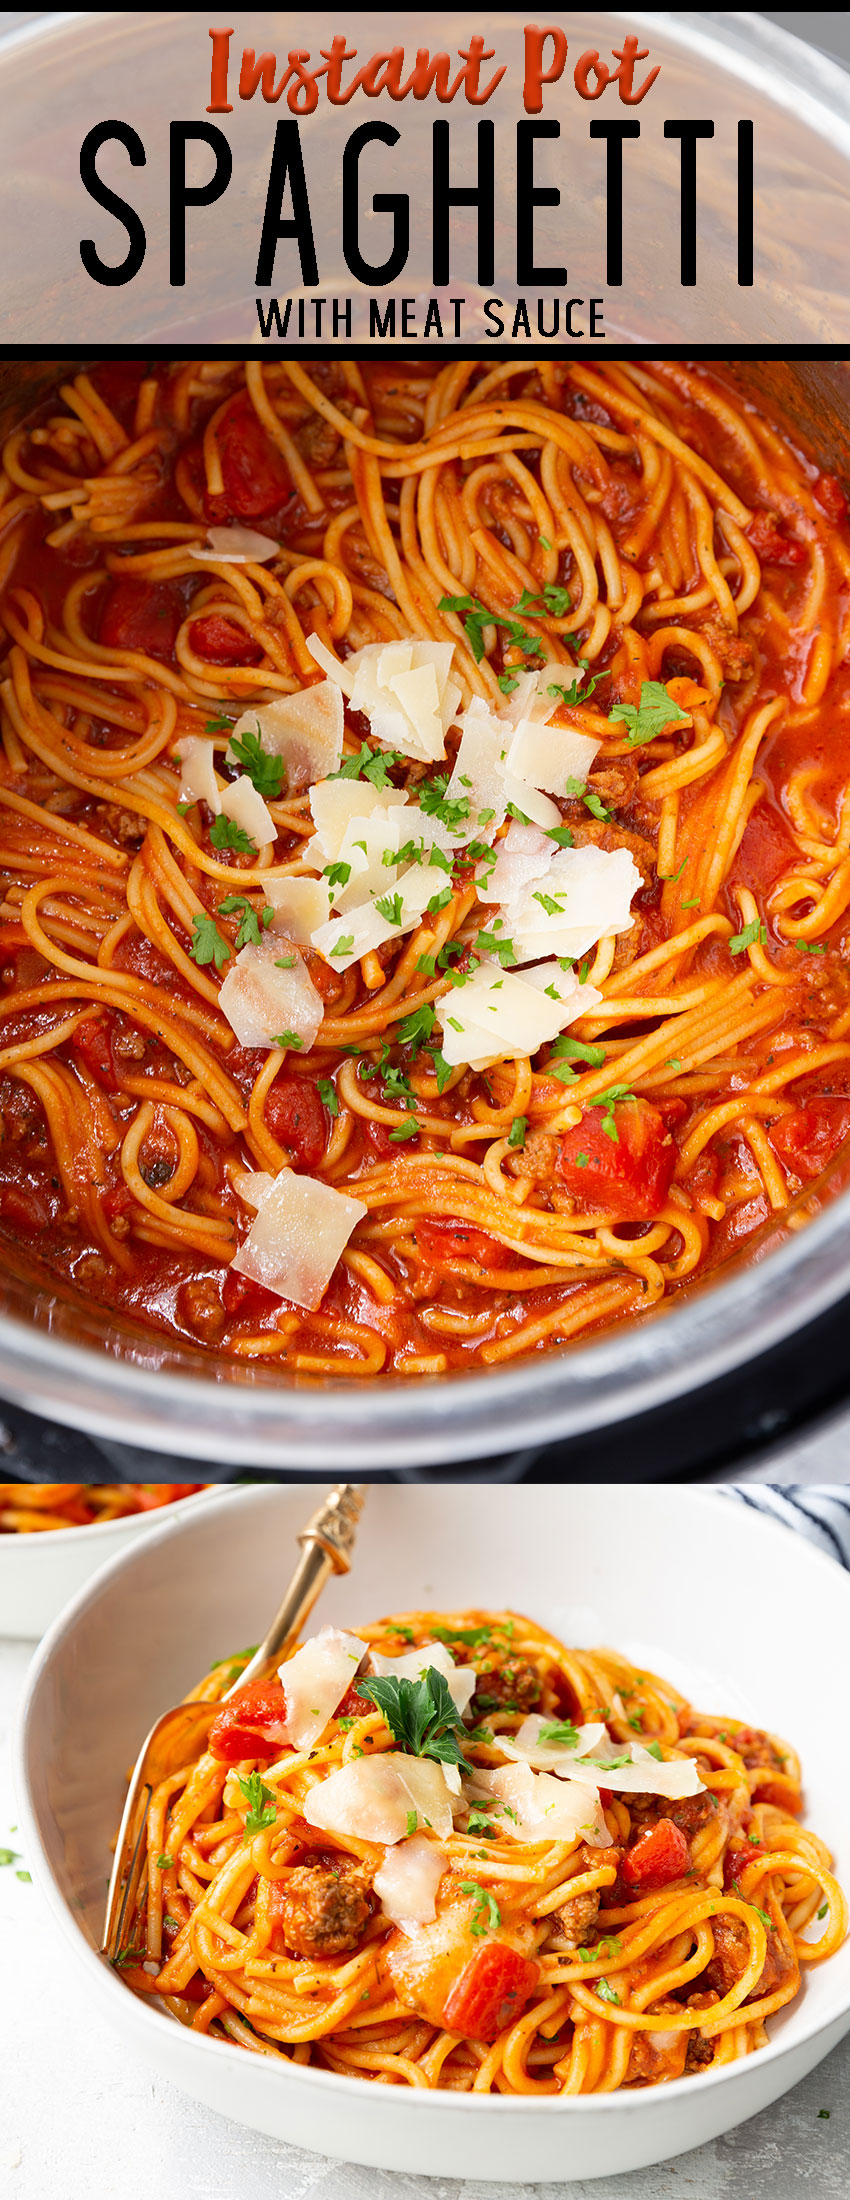 Spaghetti and meat sauce cooked in the instant pot